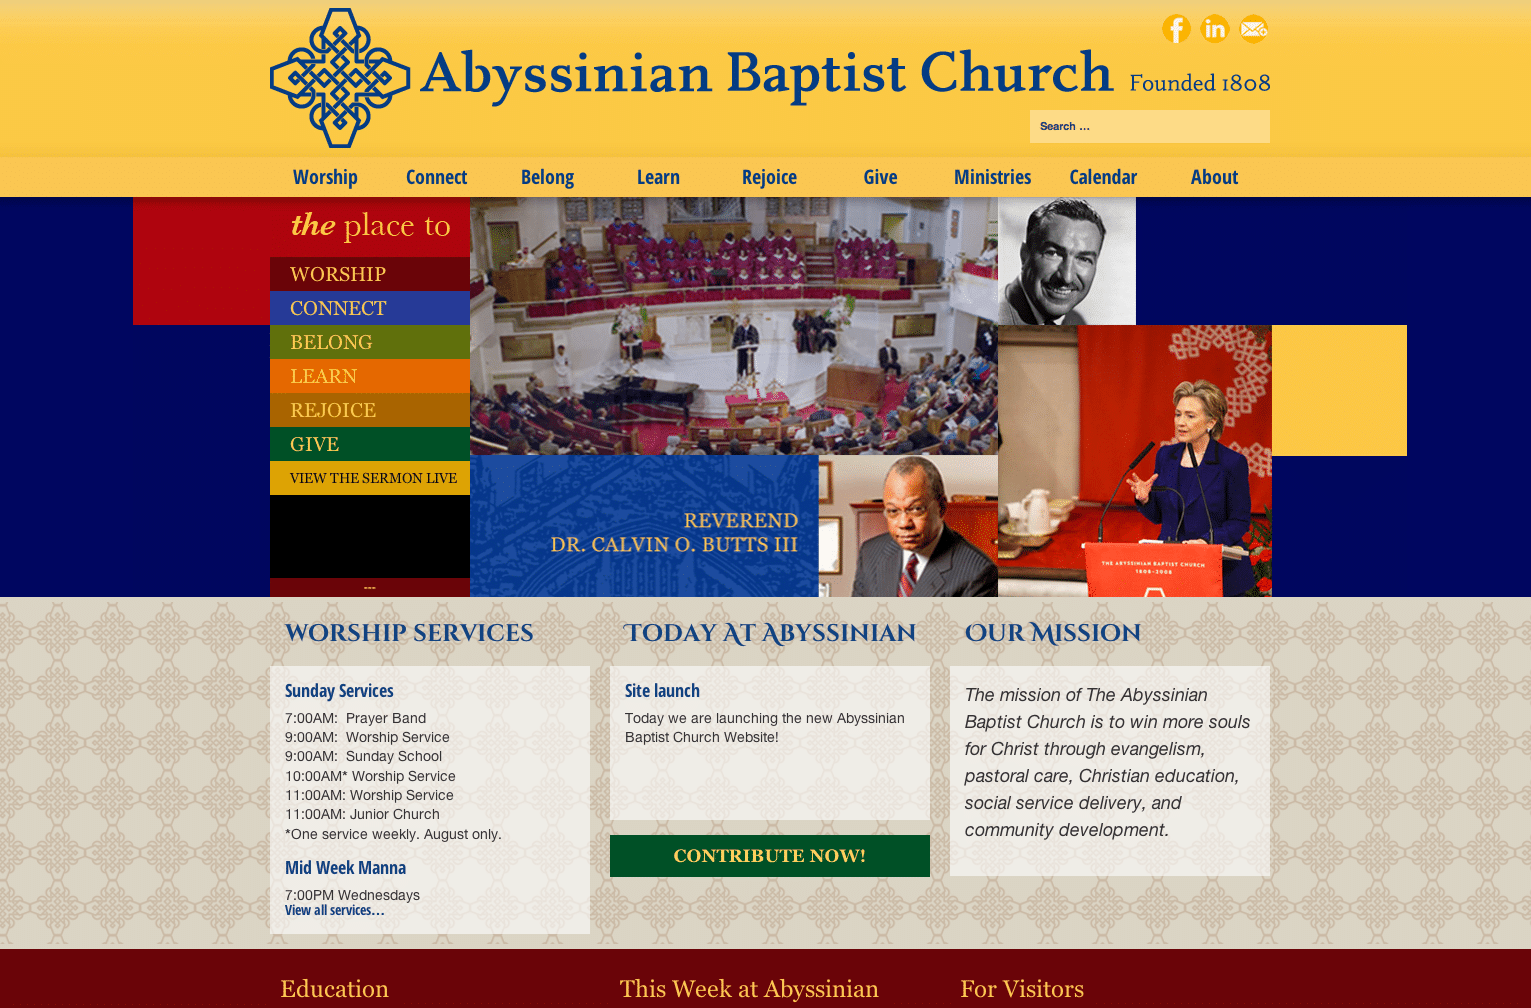 Abyssinian Baptist Church website Home Page